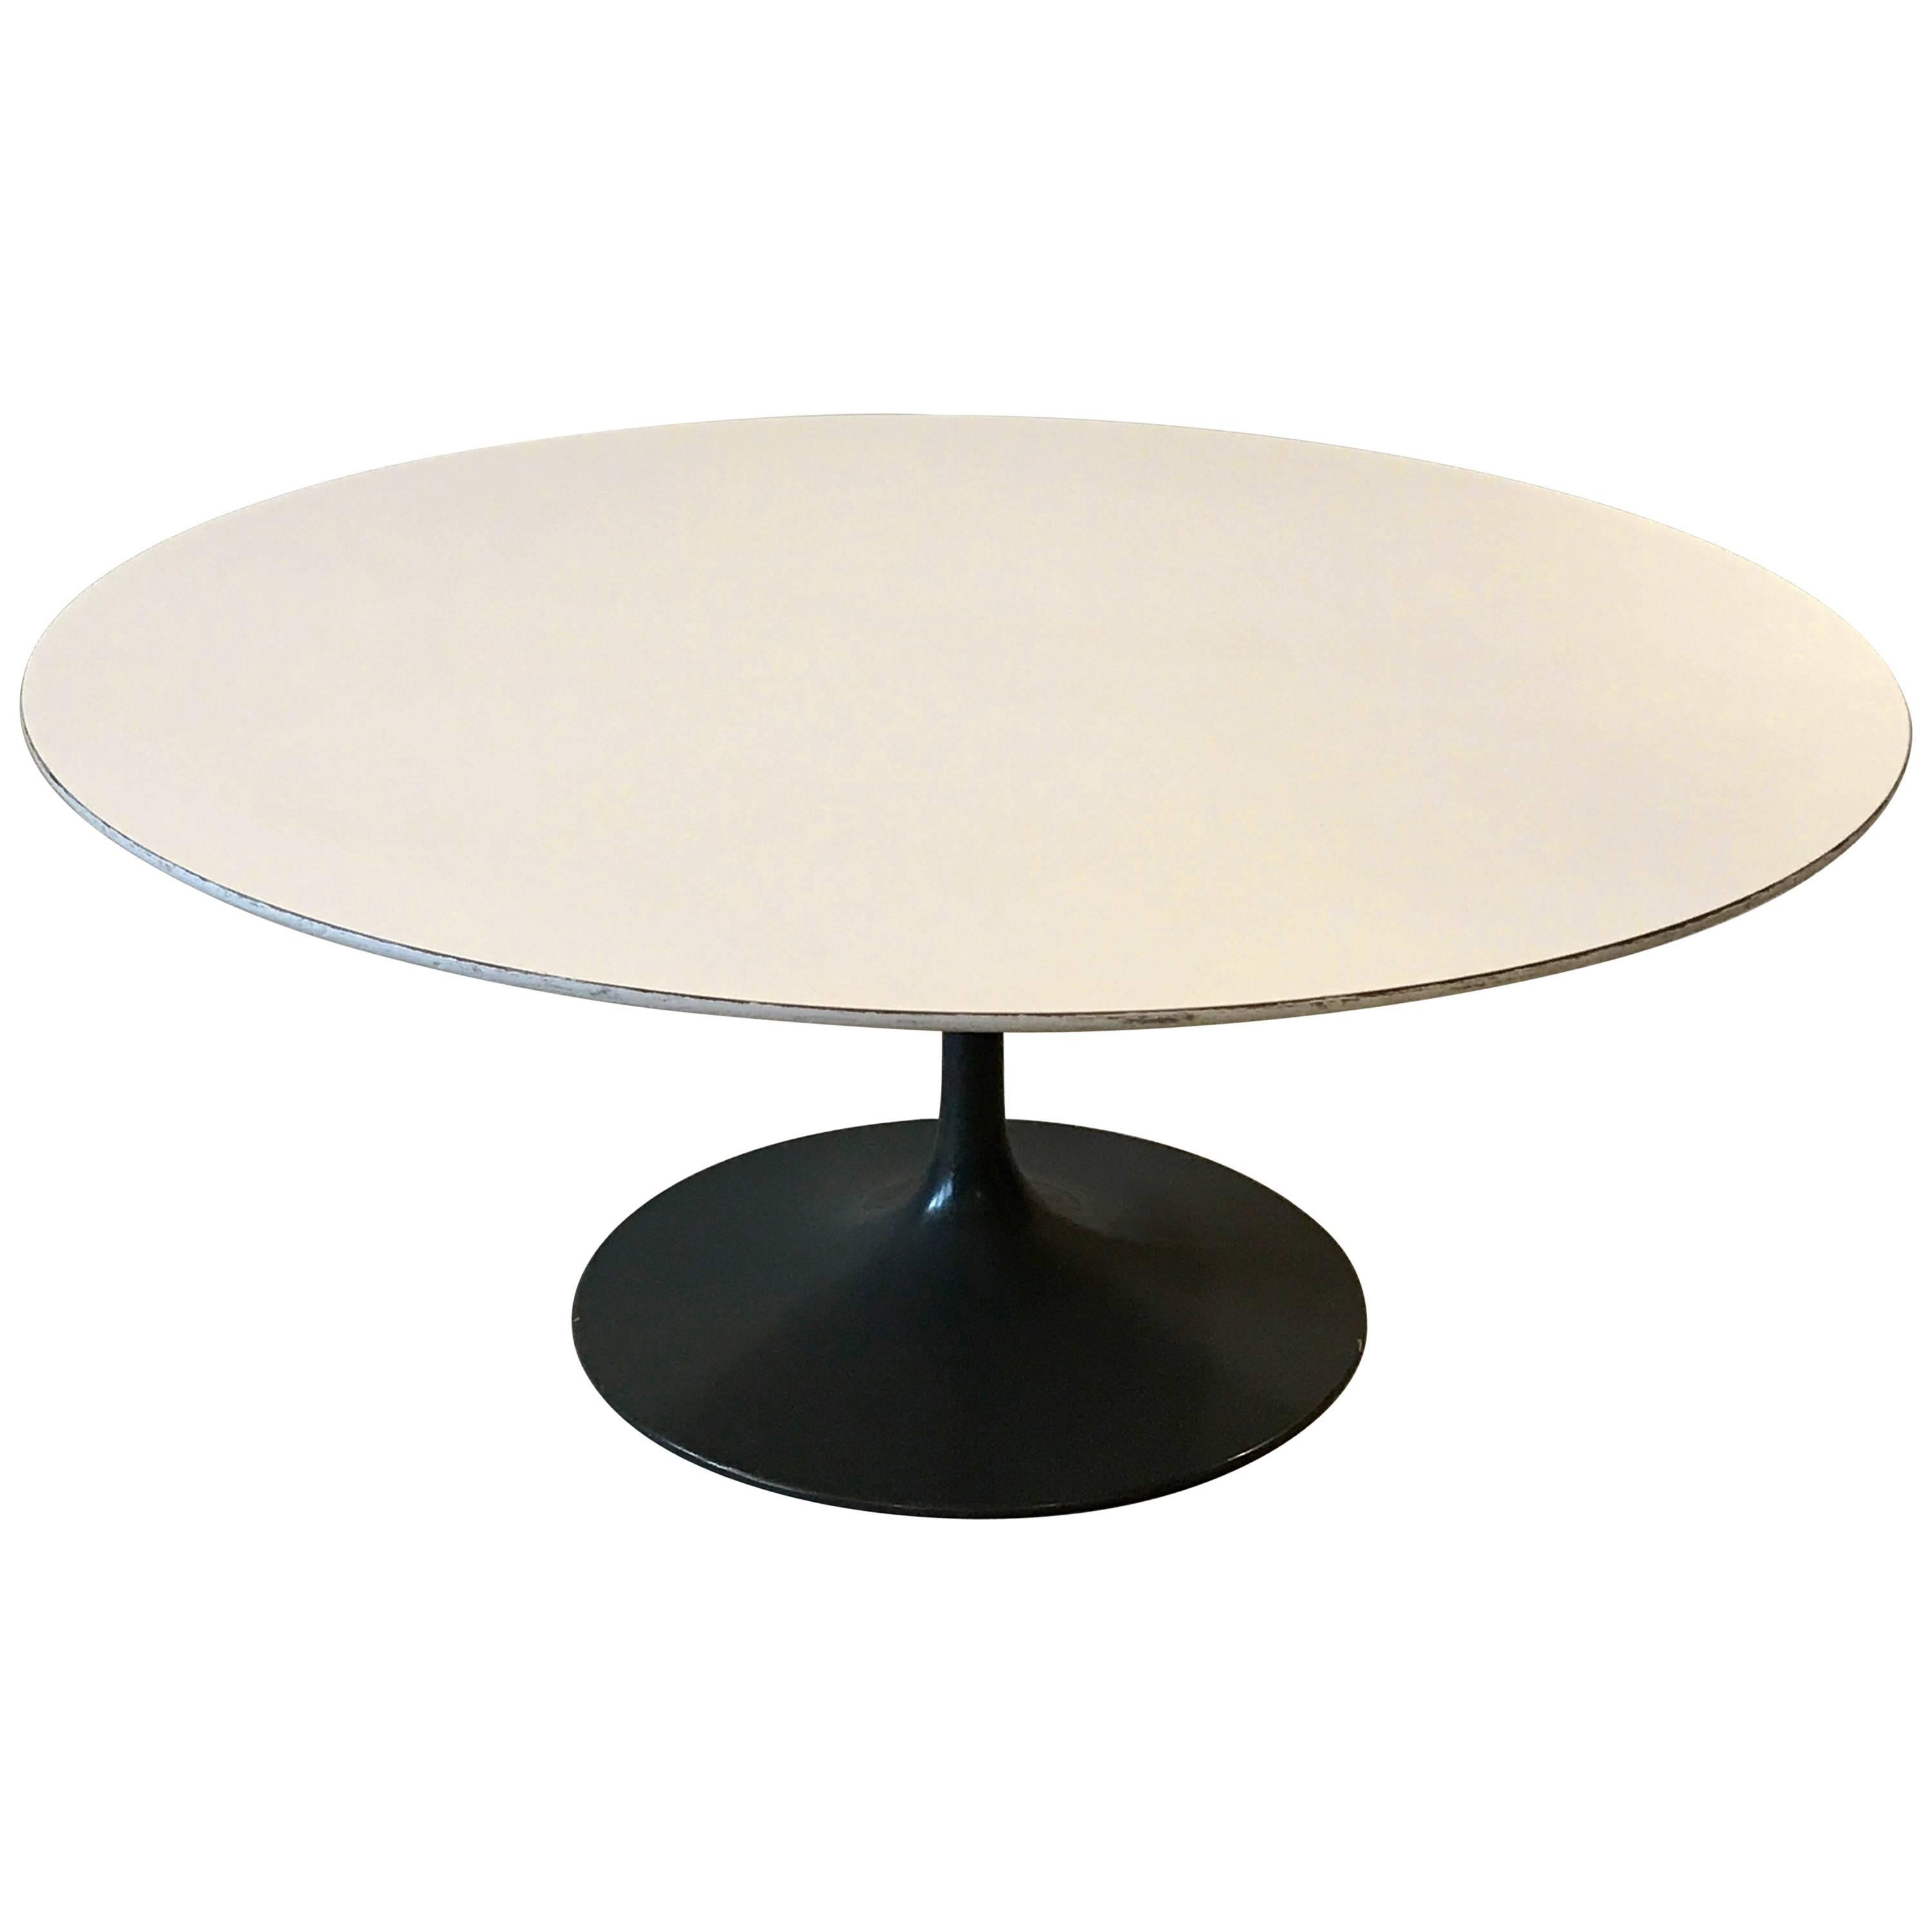 Early Tulip Base Round Coffee Table by Eero Saarinen for Knoll, 1950s